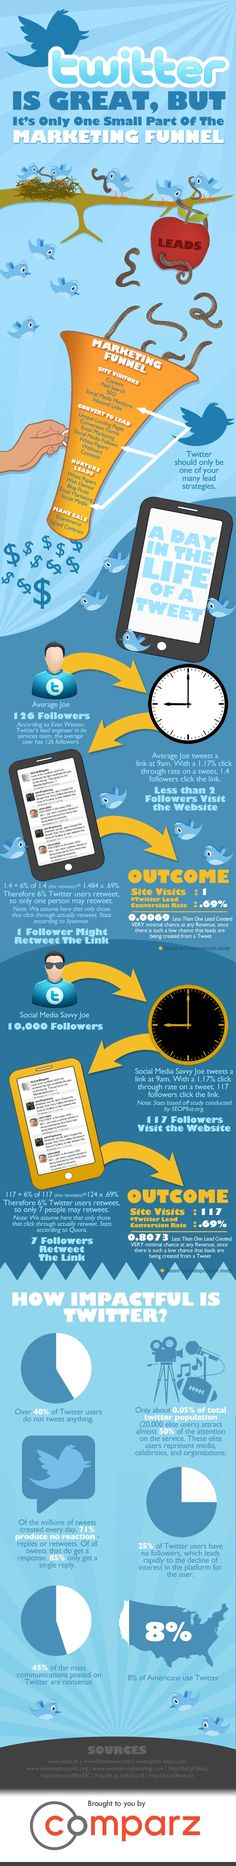 Twitter Infographic. More Twitter tips at http://getonthemap.us/twitter/blog #twitter #573tips